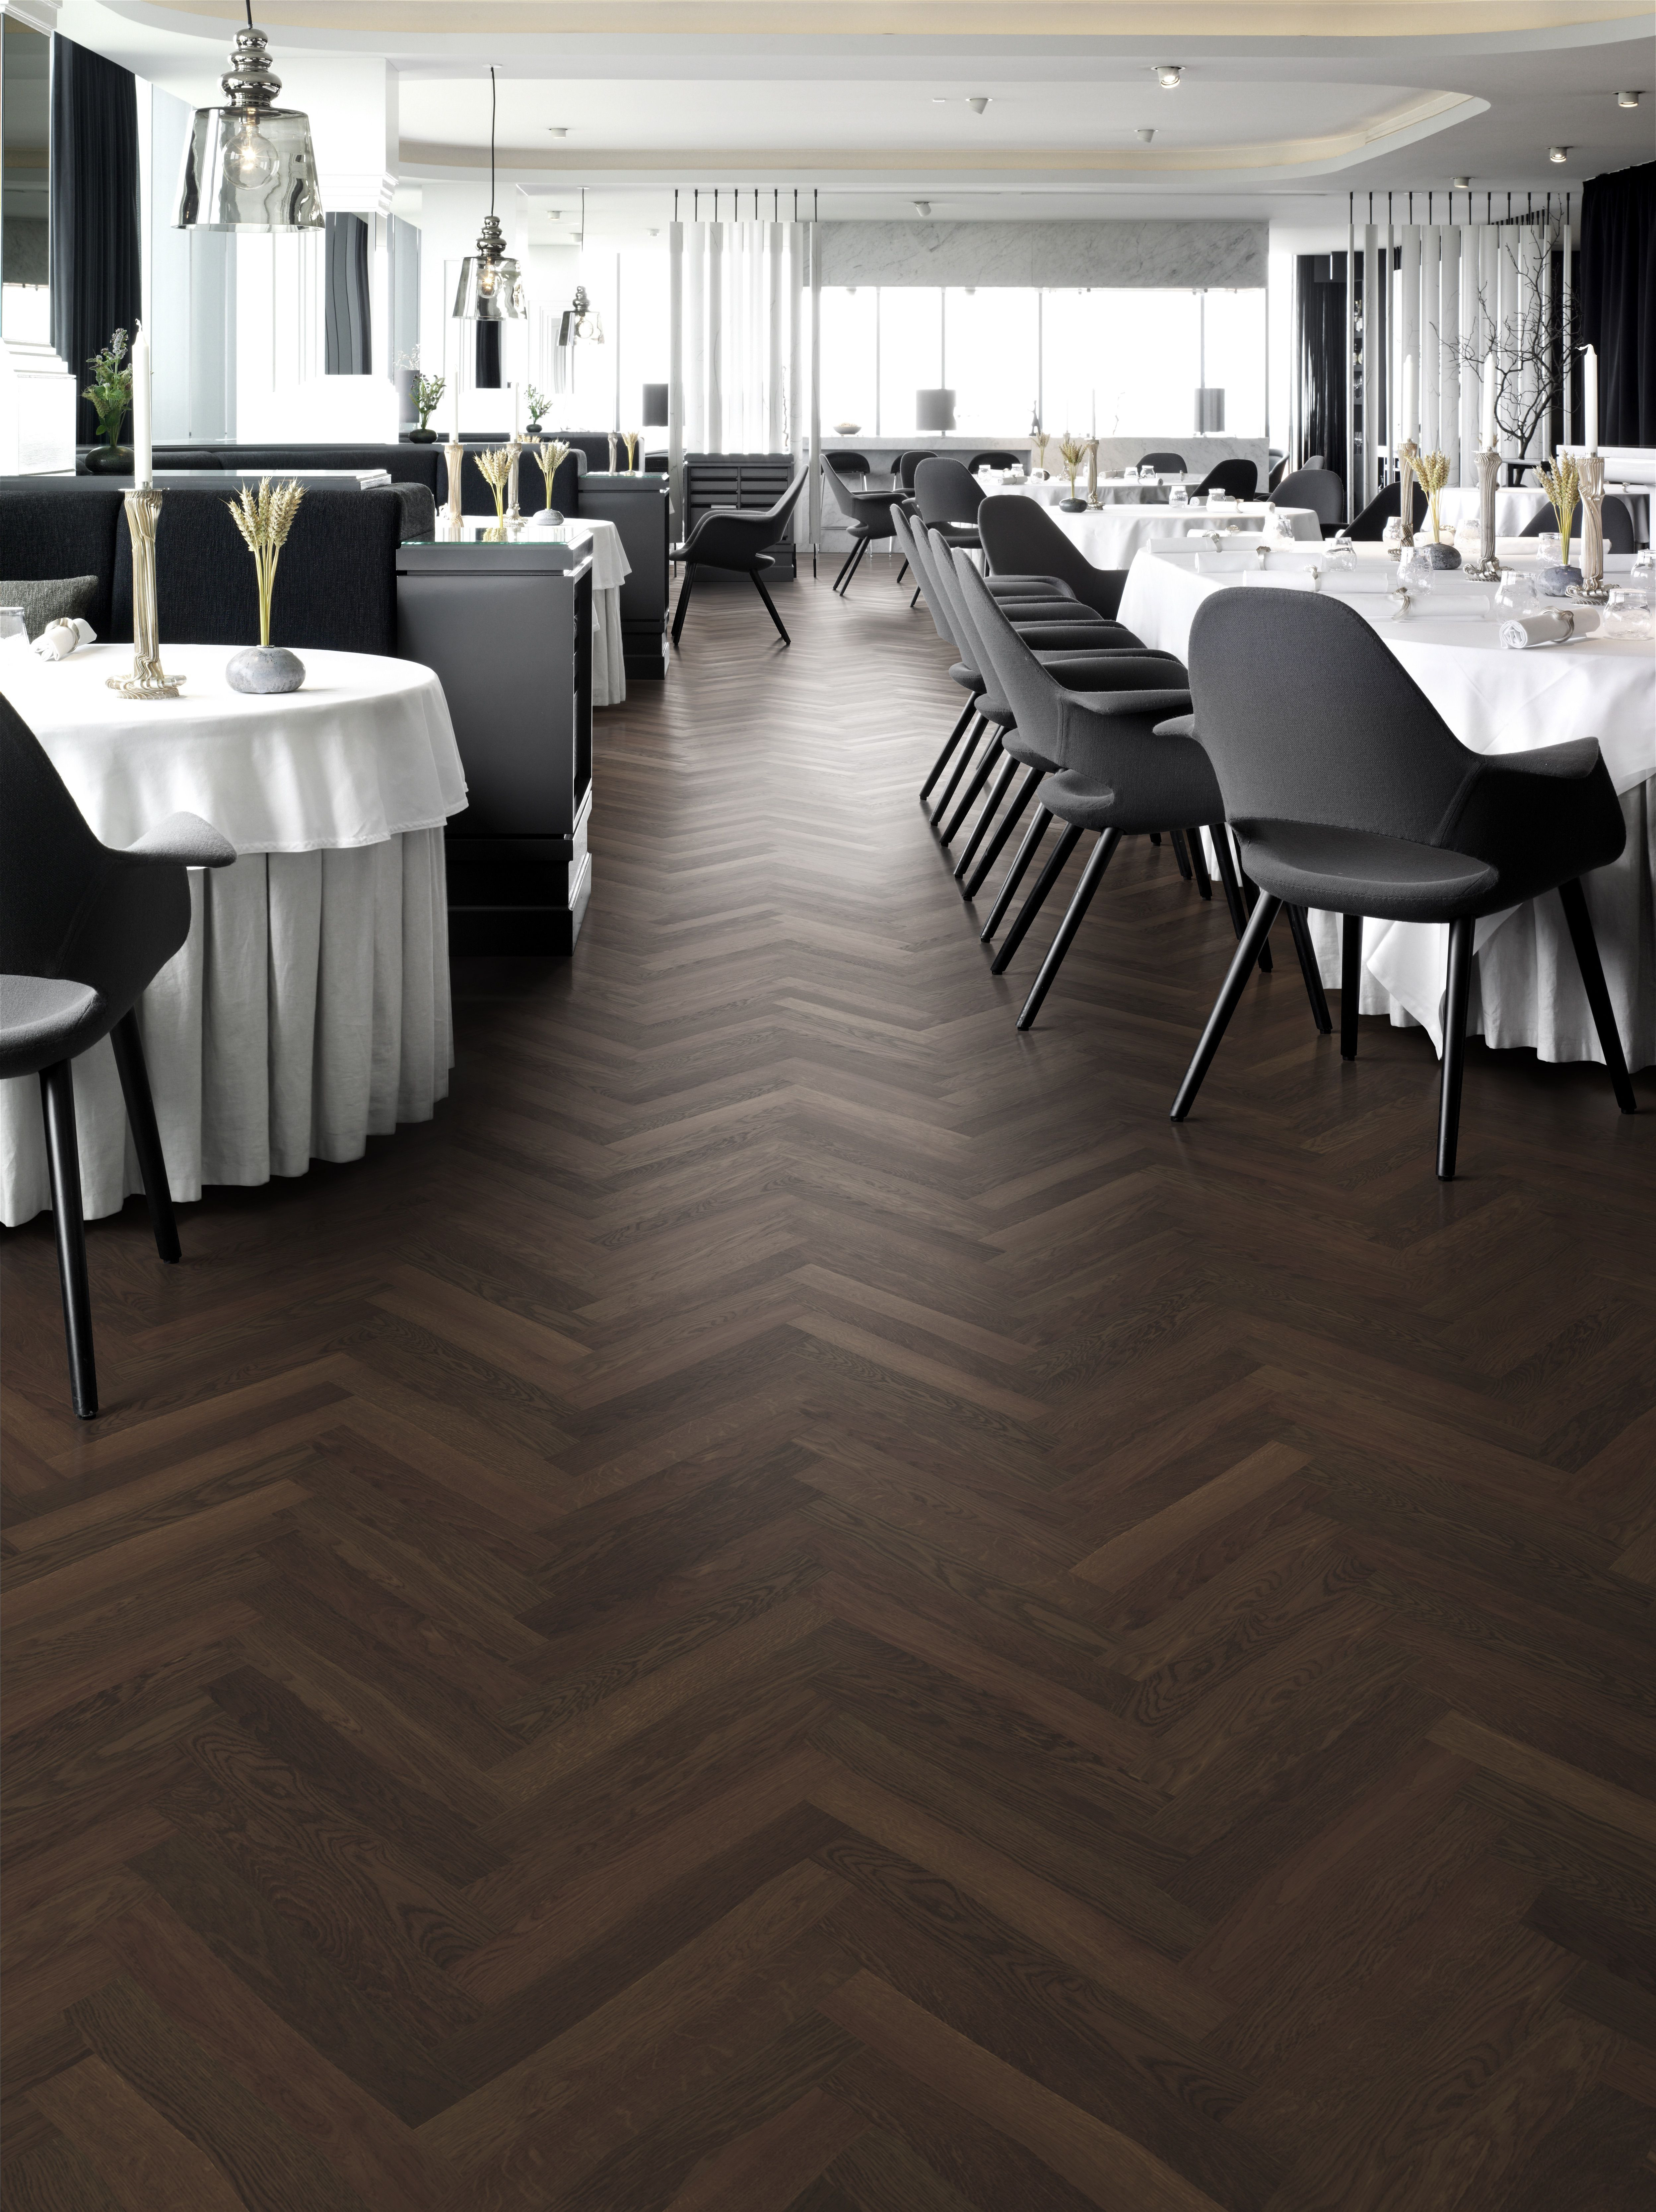 hr hardwood floors of smoked oak parquet floor oak floors pinterest throughout smoked oak parquet floor